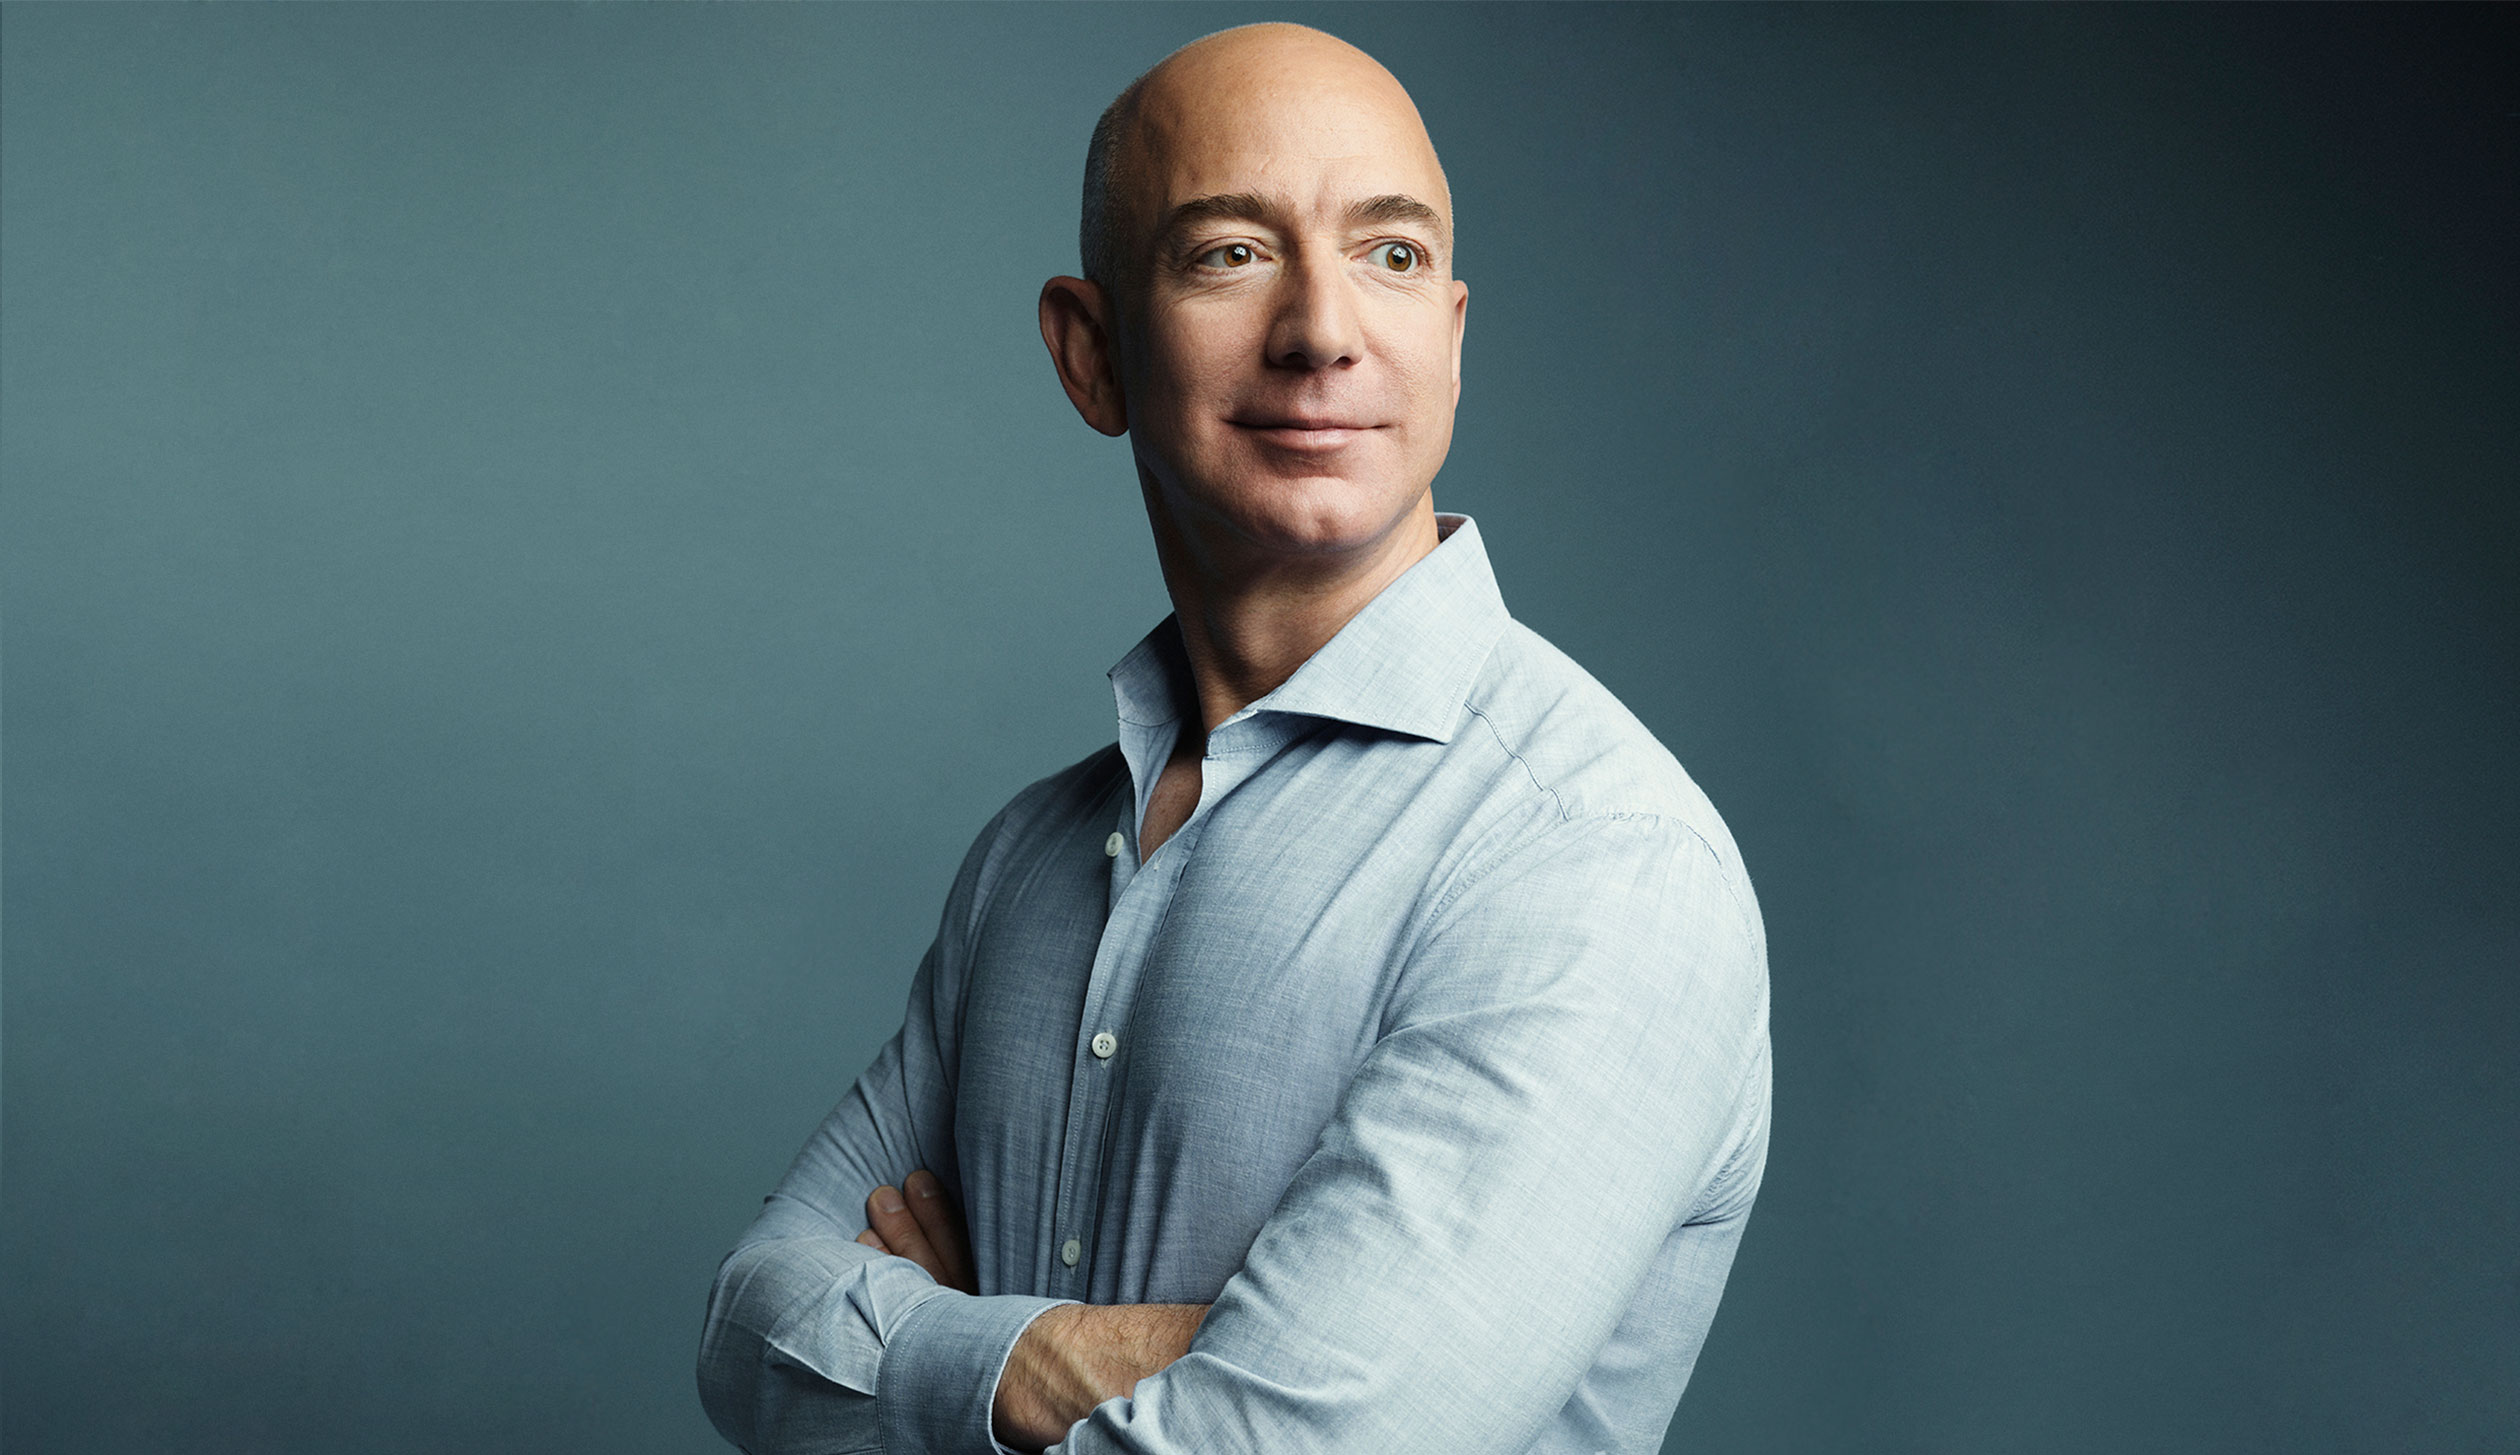 Bezos, photographed at Amazon headquarters in Seattle on March 11.